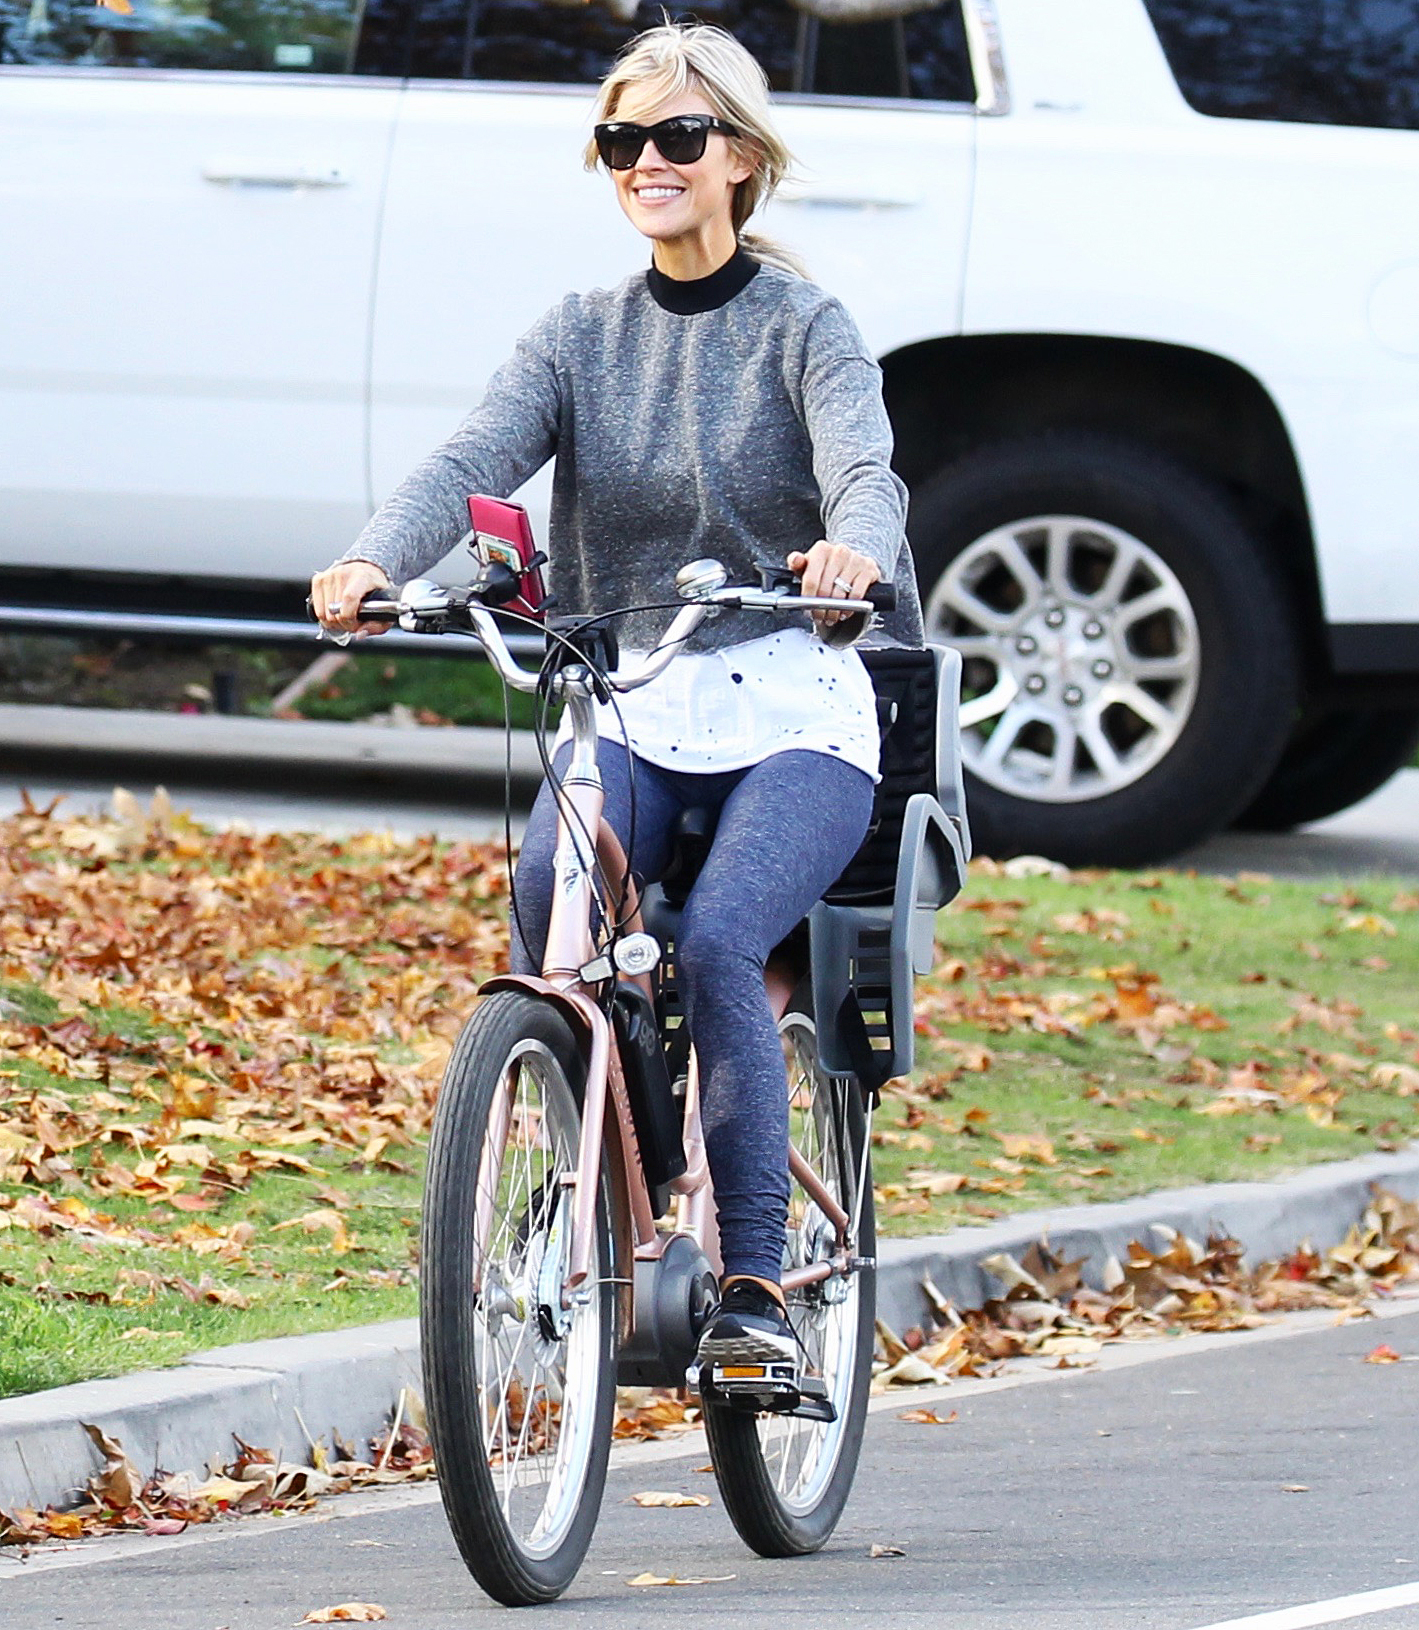 Christina-Anstead-biking - The Flip or Flop star went for a holiday ride with her new husband Ant Anstead in Newport Beach, California on December 25, 2018. Anstead, who also enjoys yoga and group classes like Orangetheory, often jogs outside.